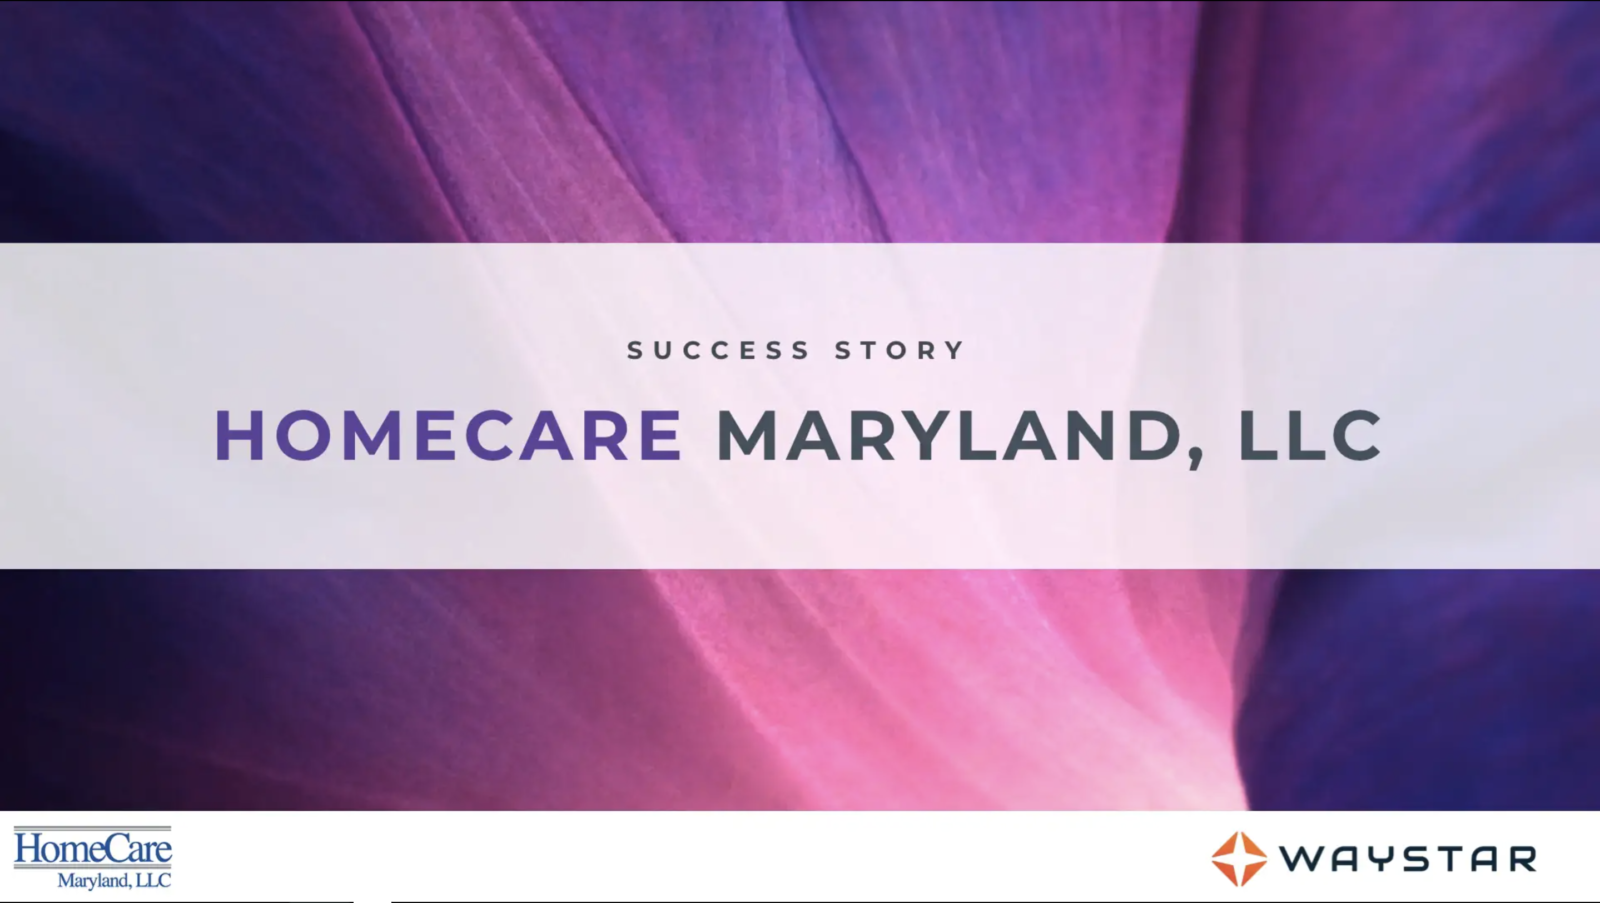 Success story: HomeCare Maryland